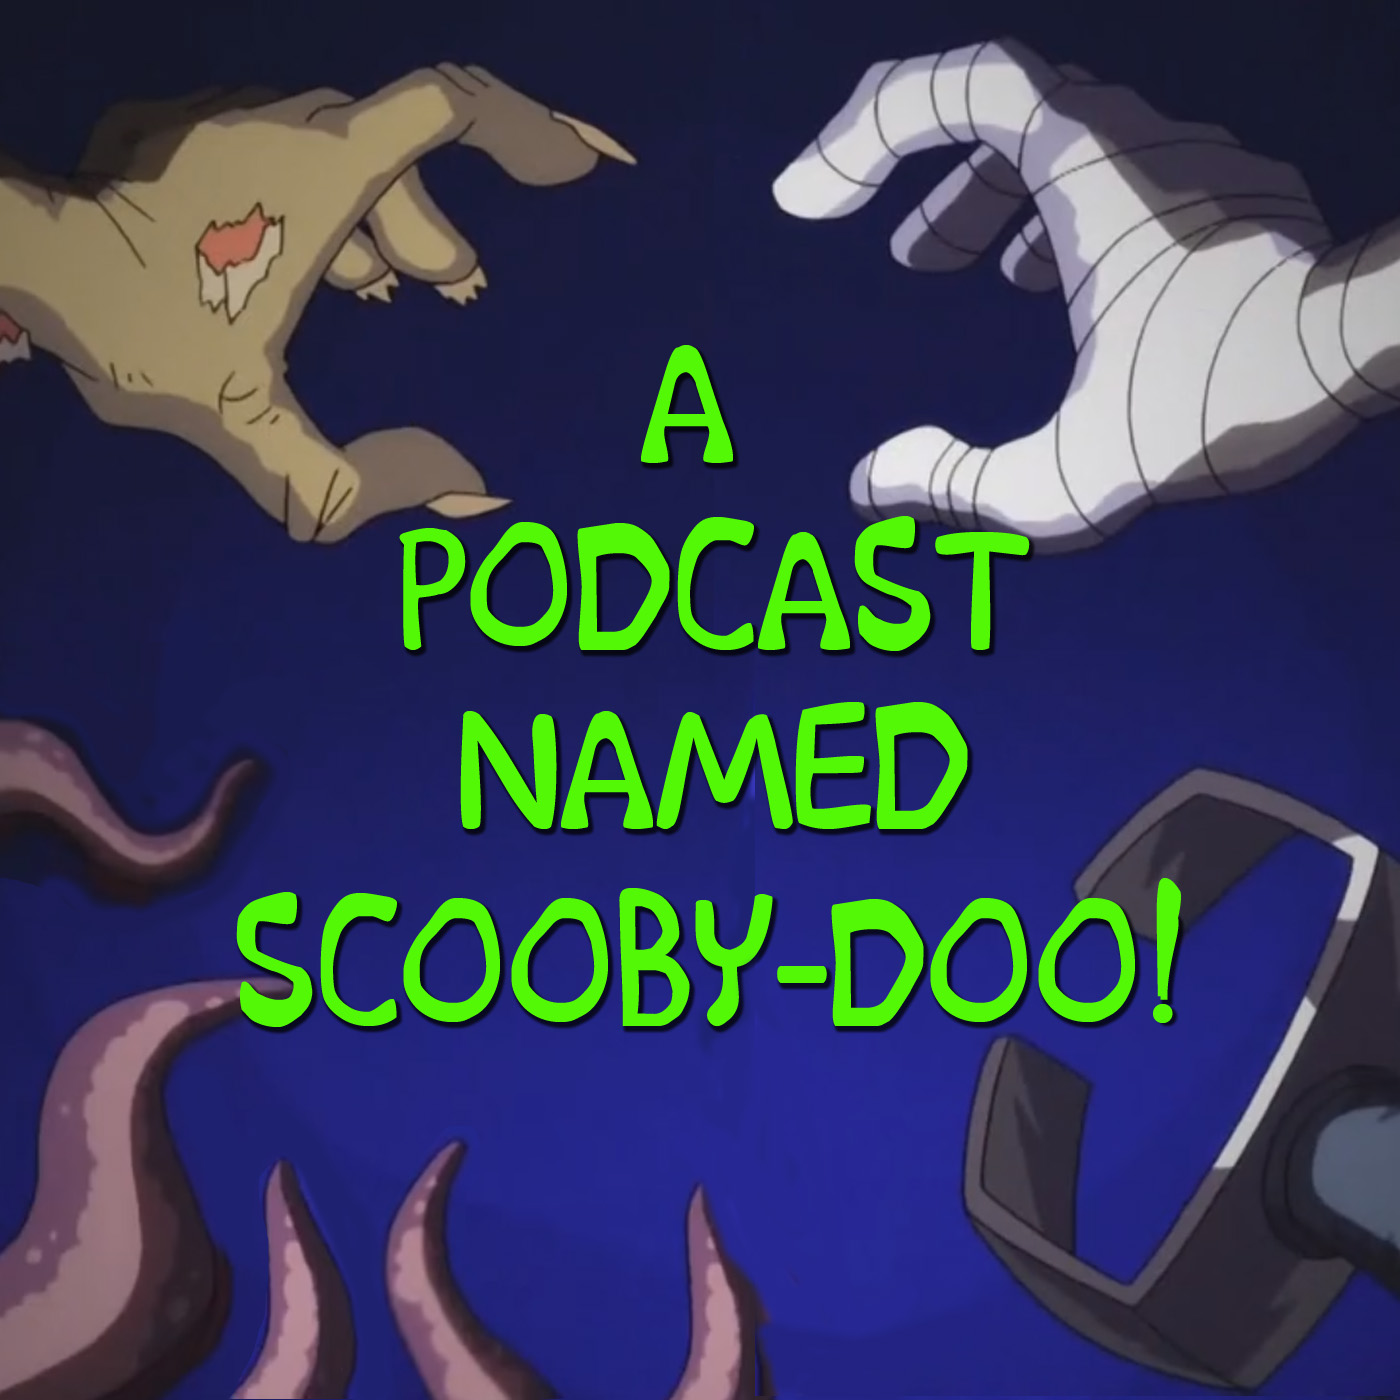 A Podcast Named Scooby-Doo! show art